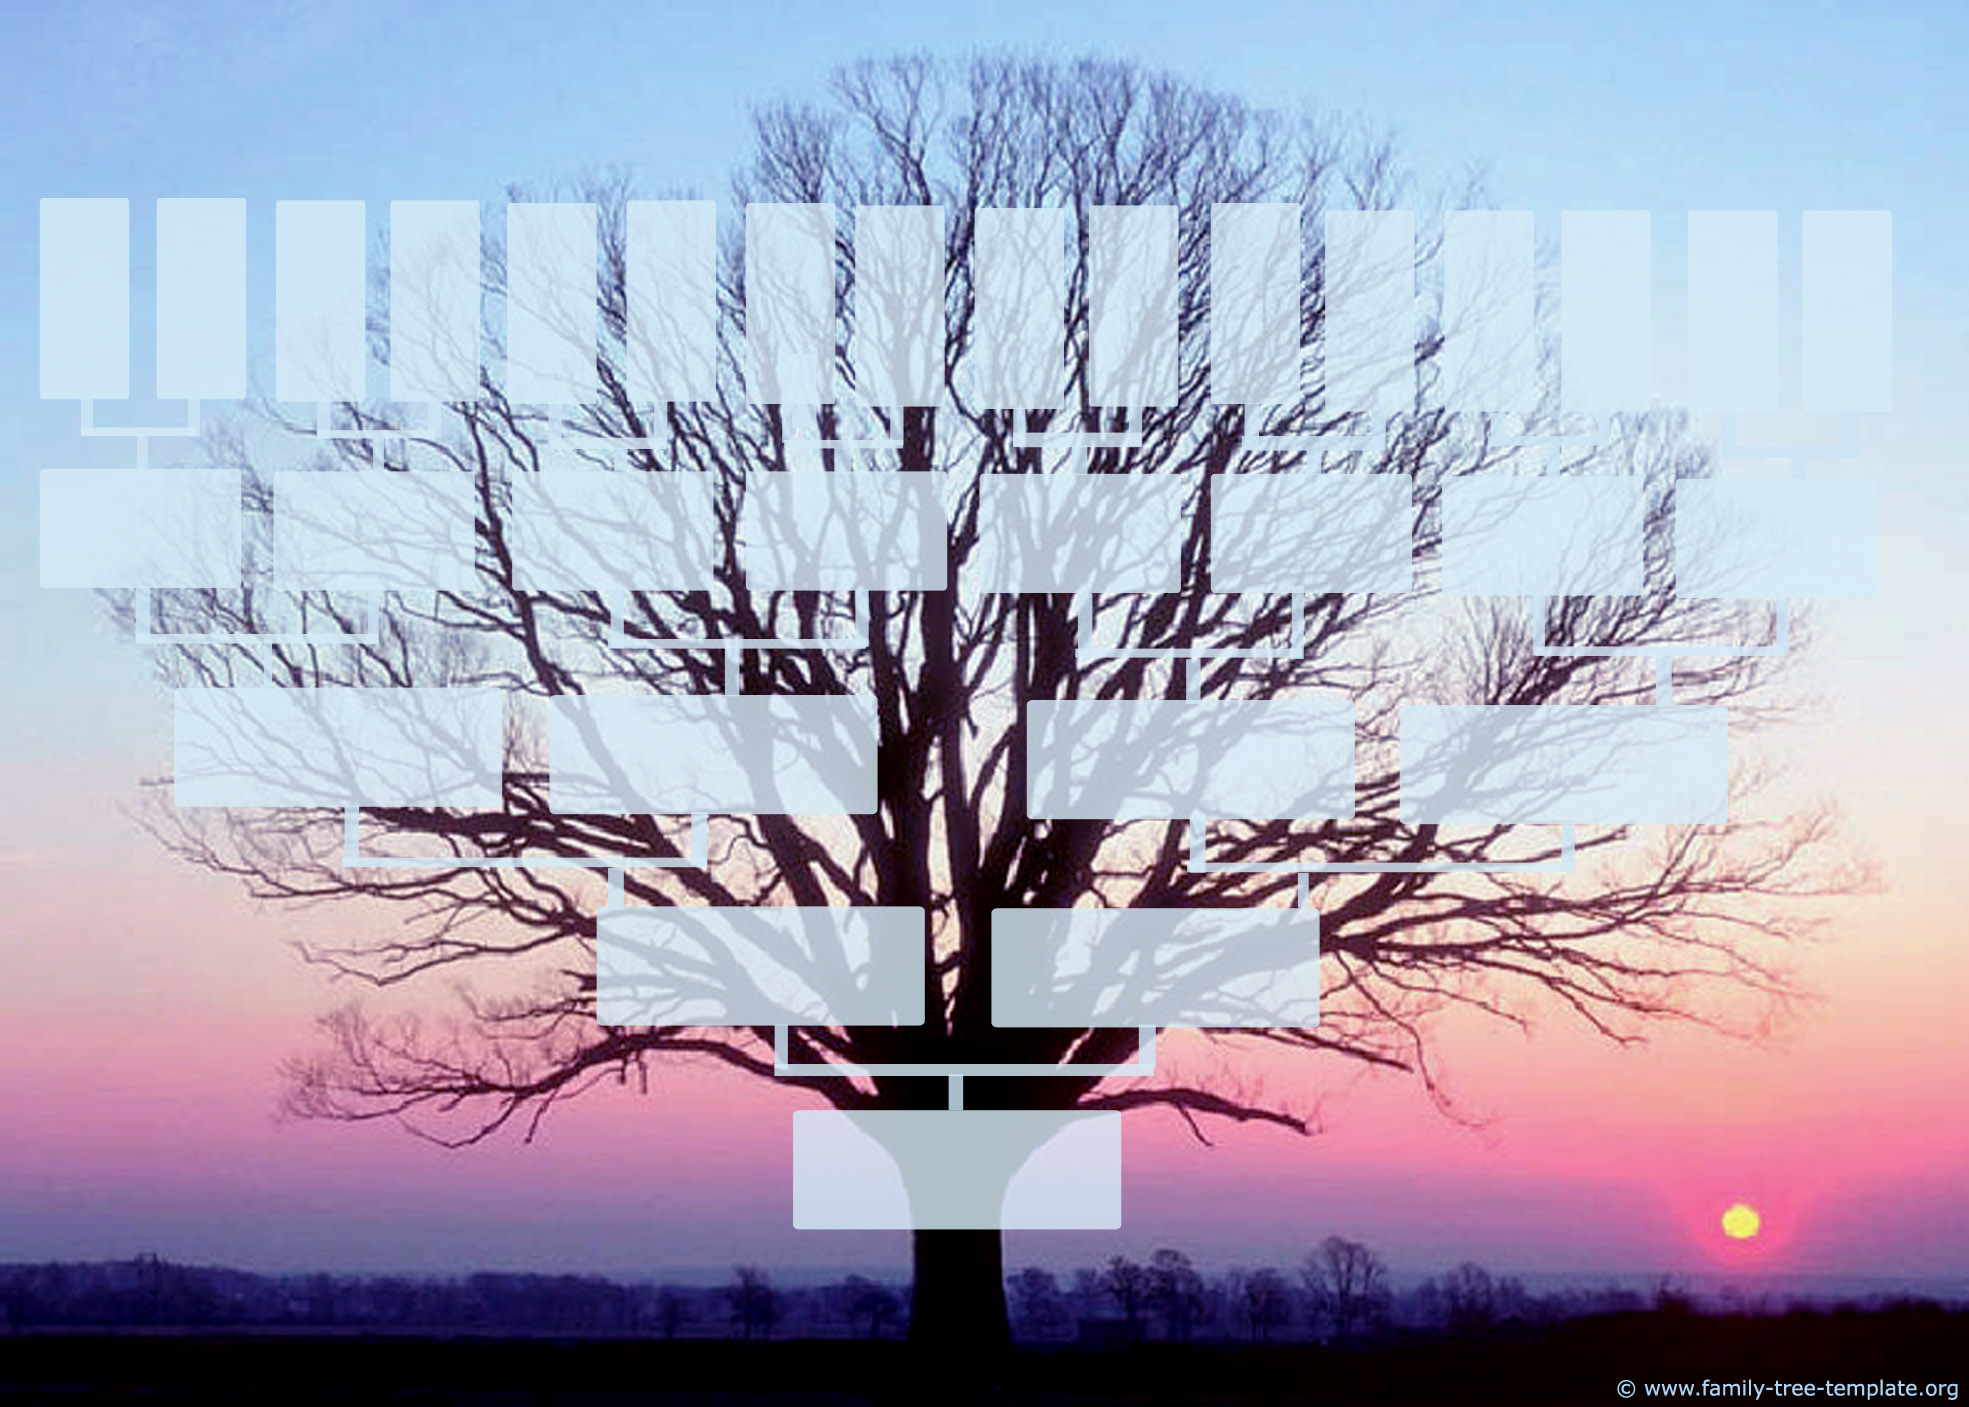 Beautiful family tree form in winter landscape with a sunrise on the background.